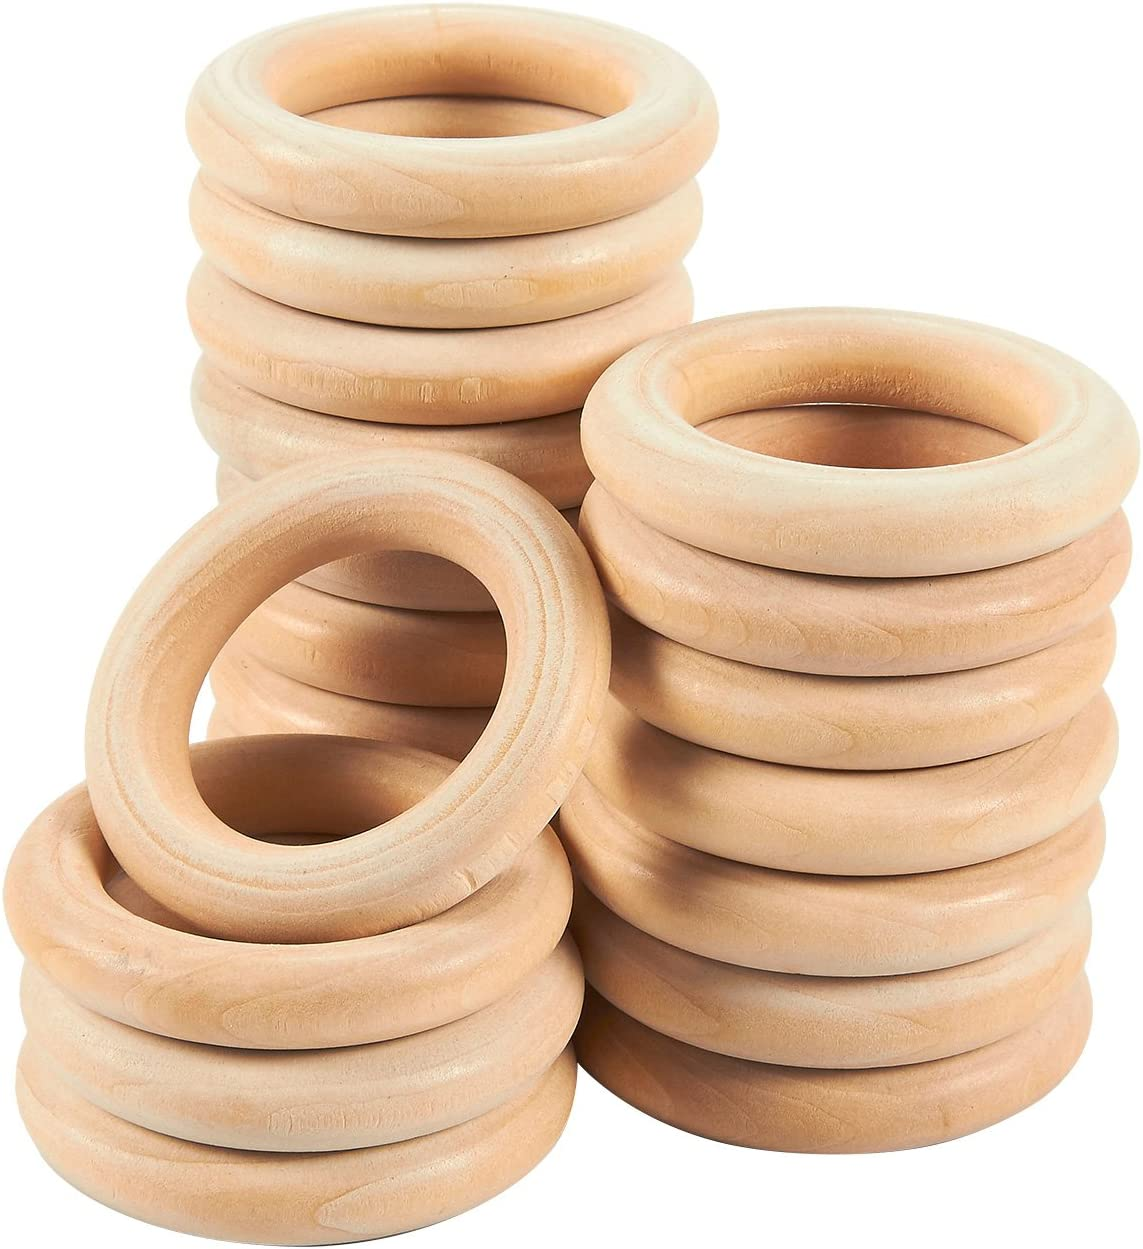 Exceart 1 Set//61 Pcs Unfinished Wooden Rings Wooden Teething Ring Natural Wood Teething Rings Macrame Cotton Cord Cotton Rope Tapestry Accessories